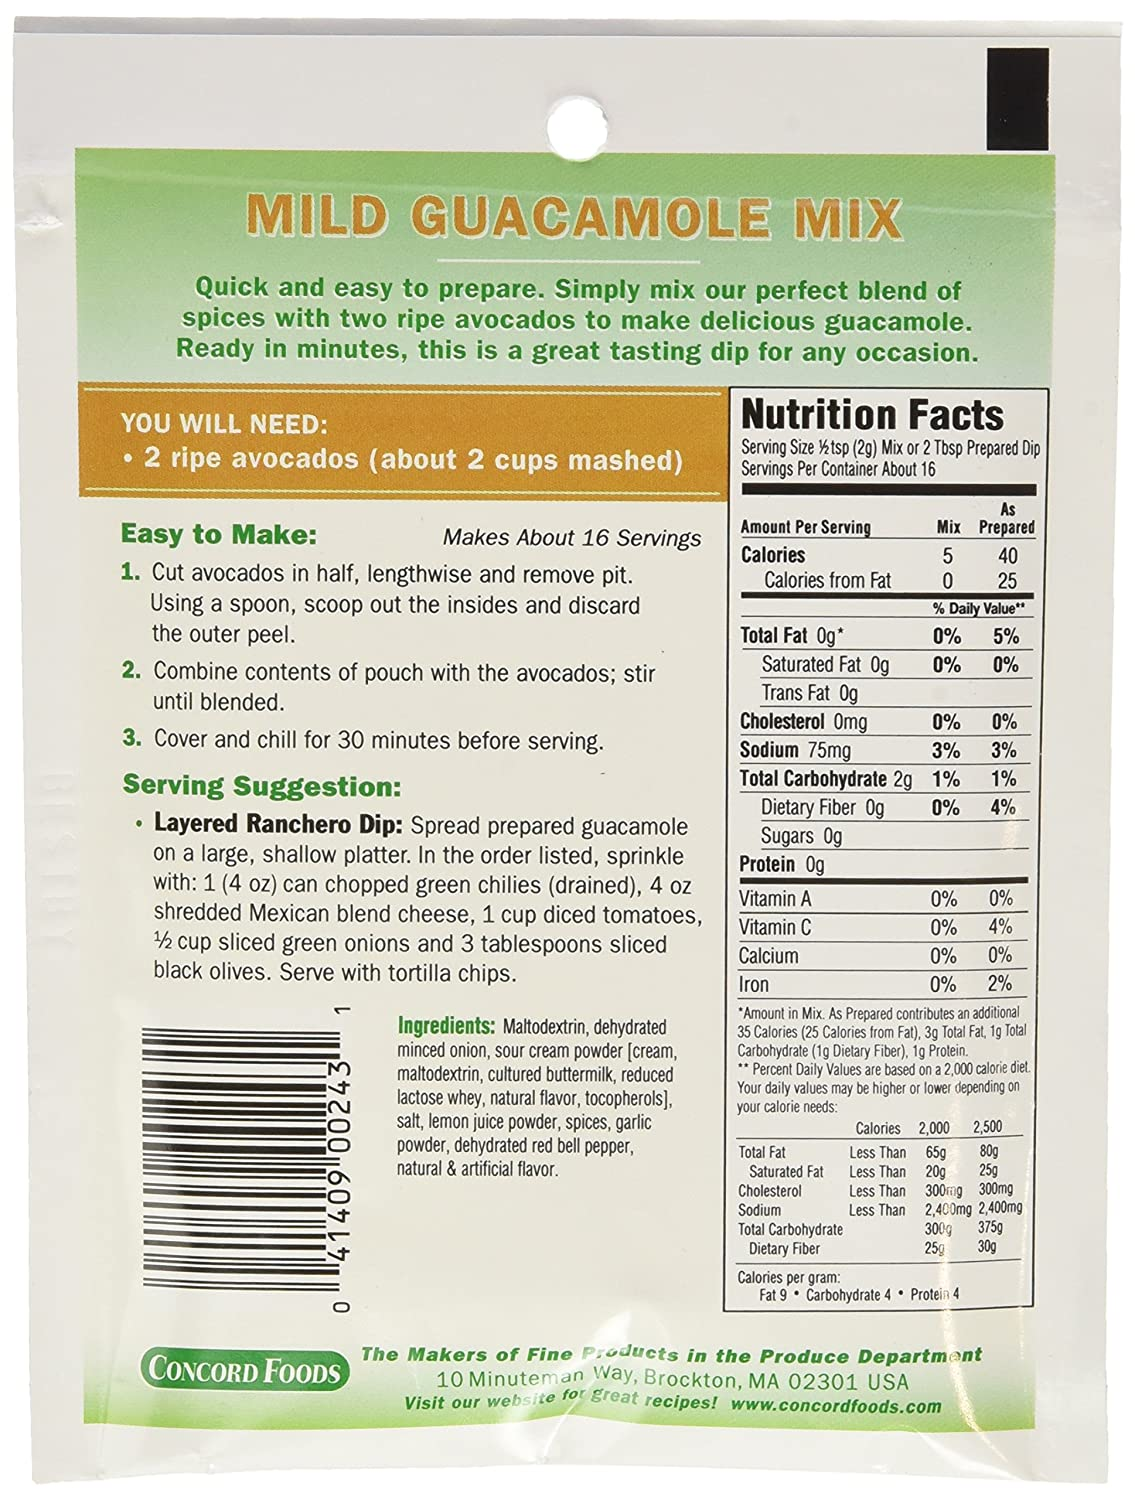 Whole Foods Guacamole Nutrition Information